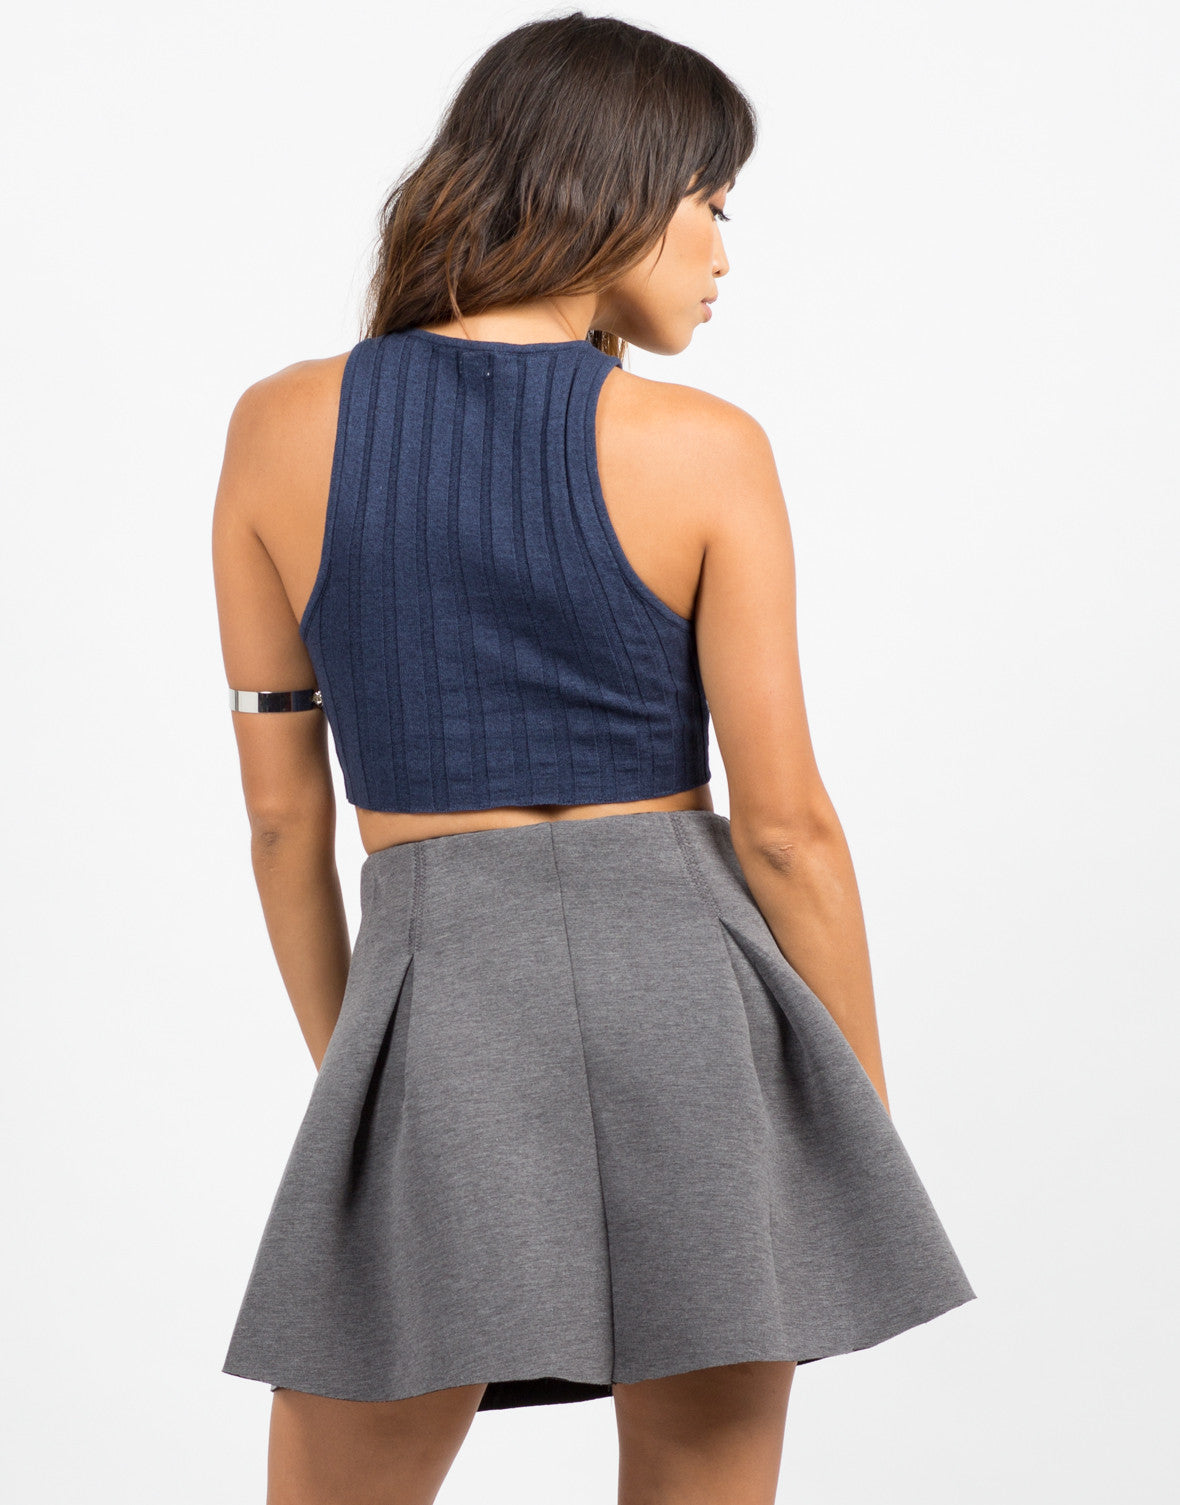 Back View of Stretchy Ribbed Crop Tank